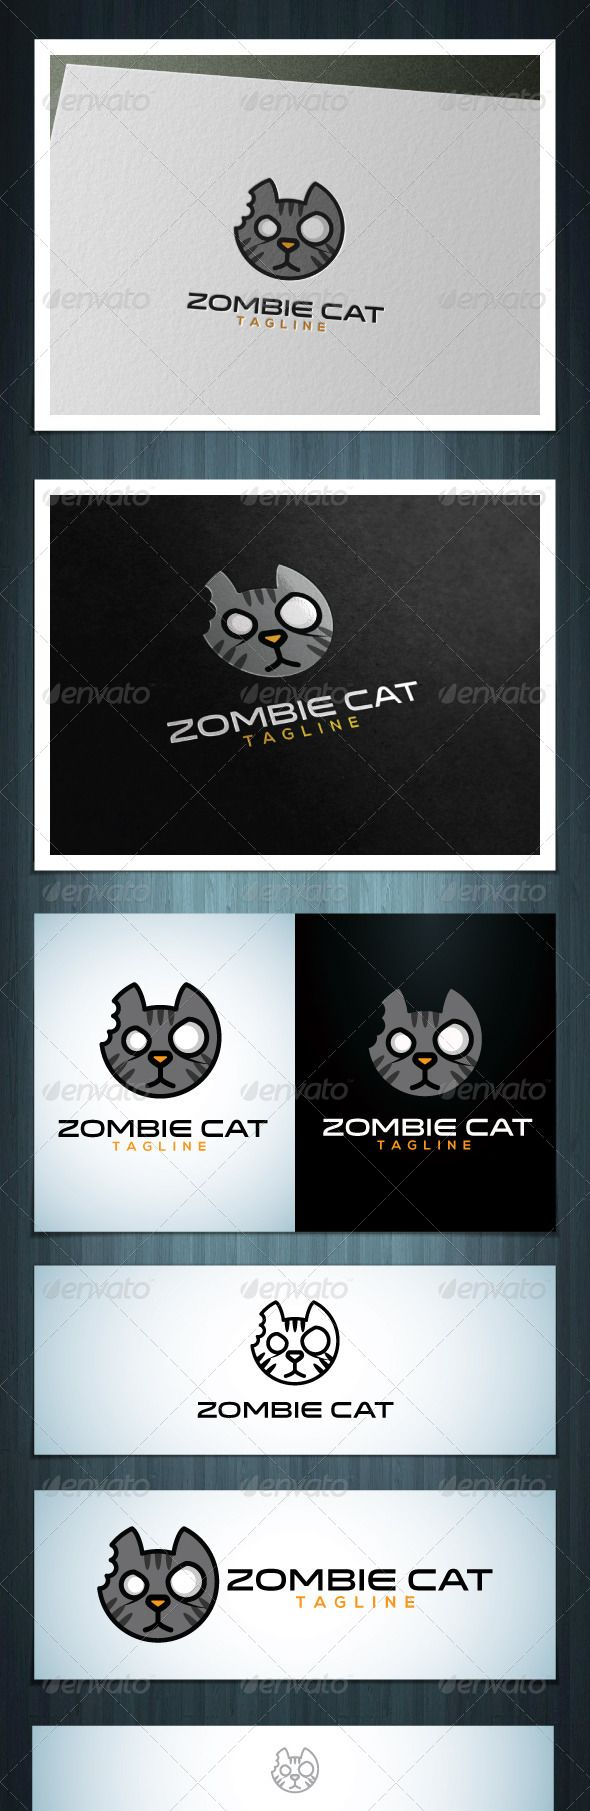 Zombie Cat by Scredeck Zombie Cat is a multipurpose logo, can be used in any companies related to music, blog, zombies, games etc. Ai & EPS 10 / CMYK /